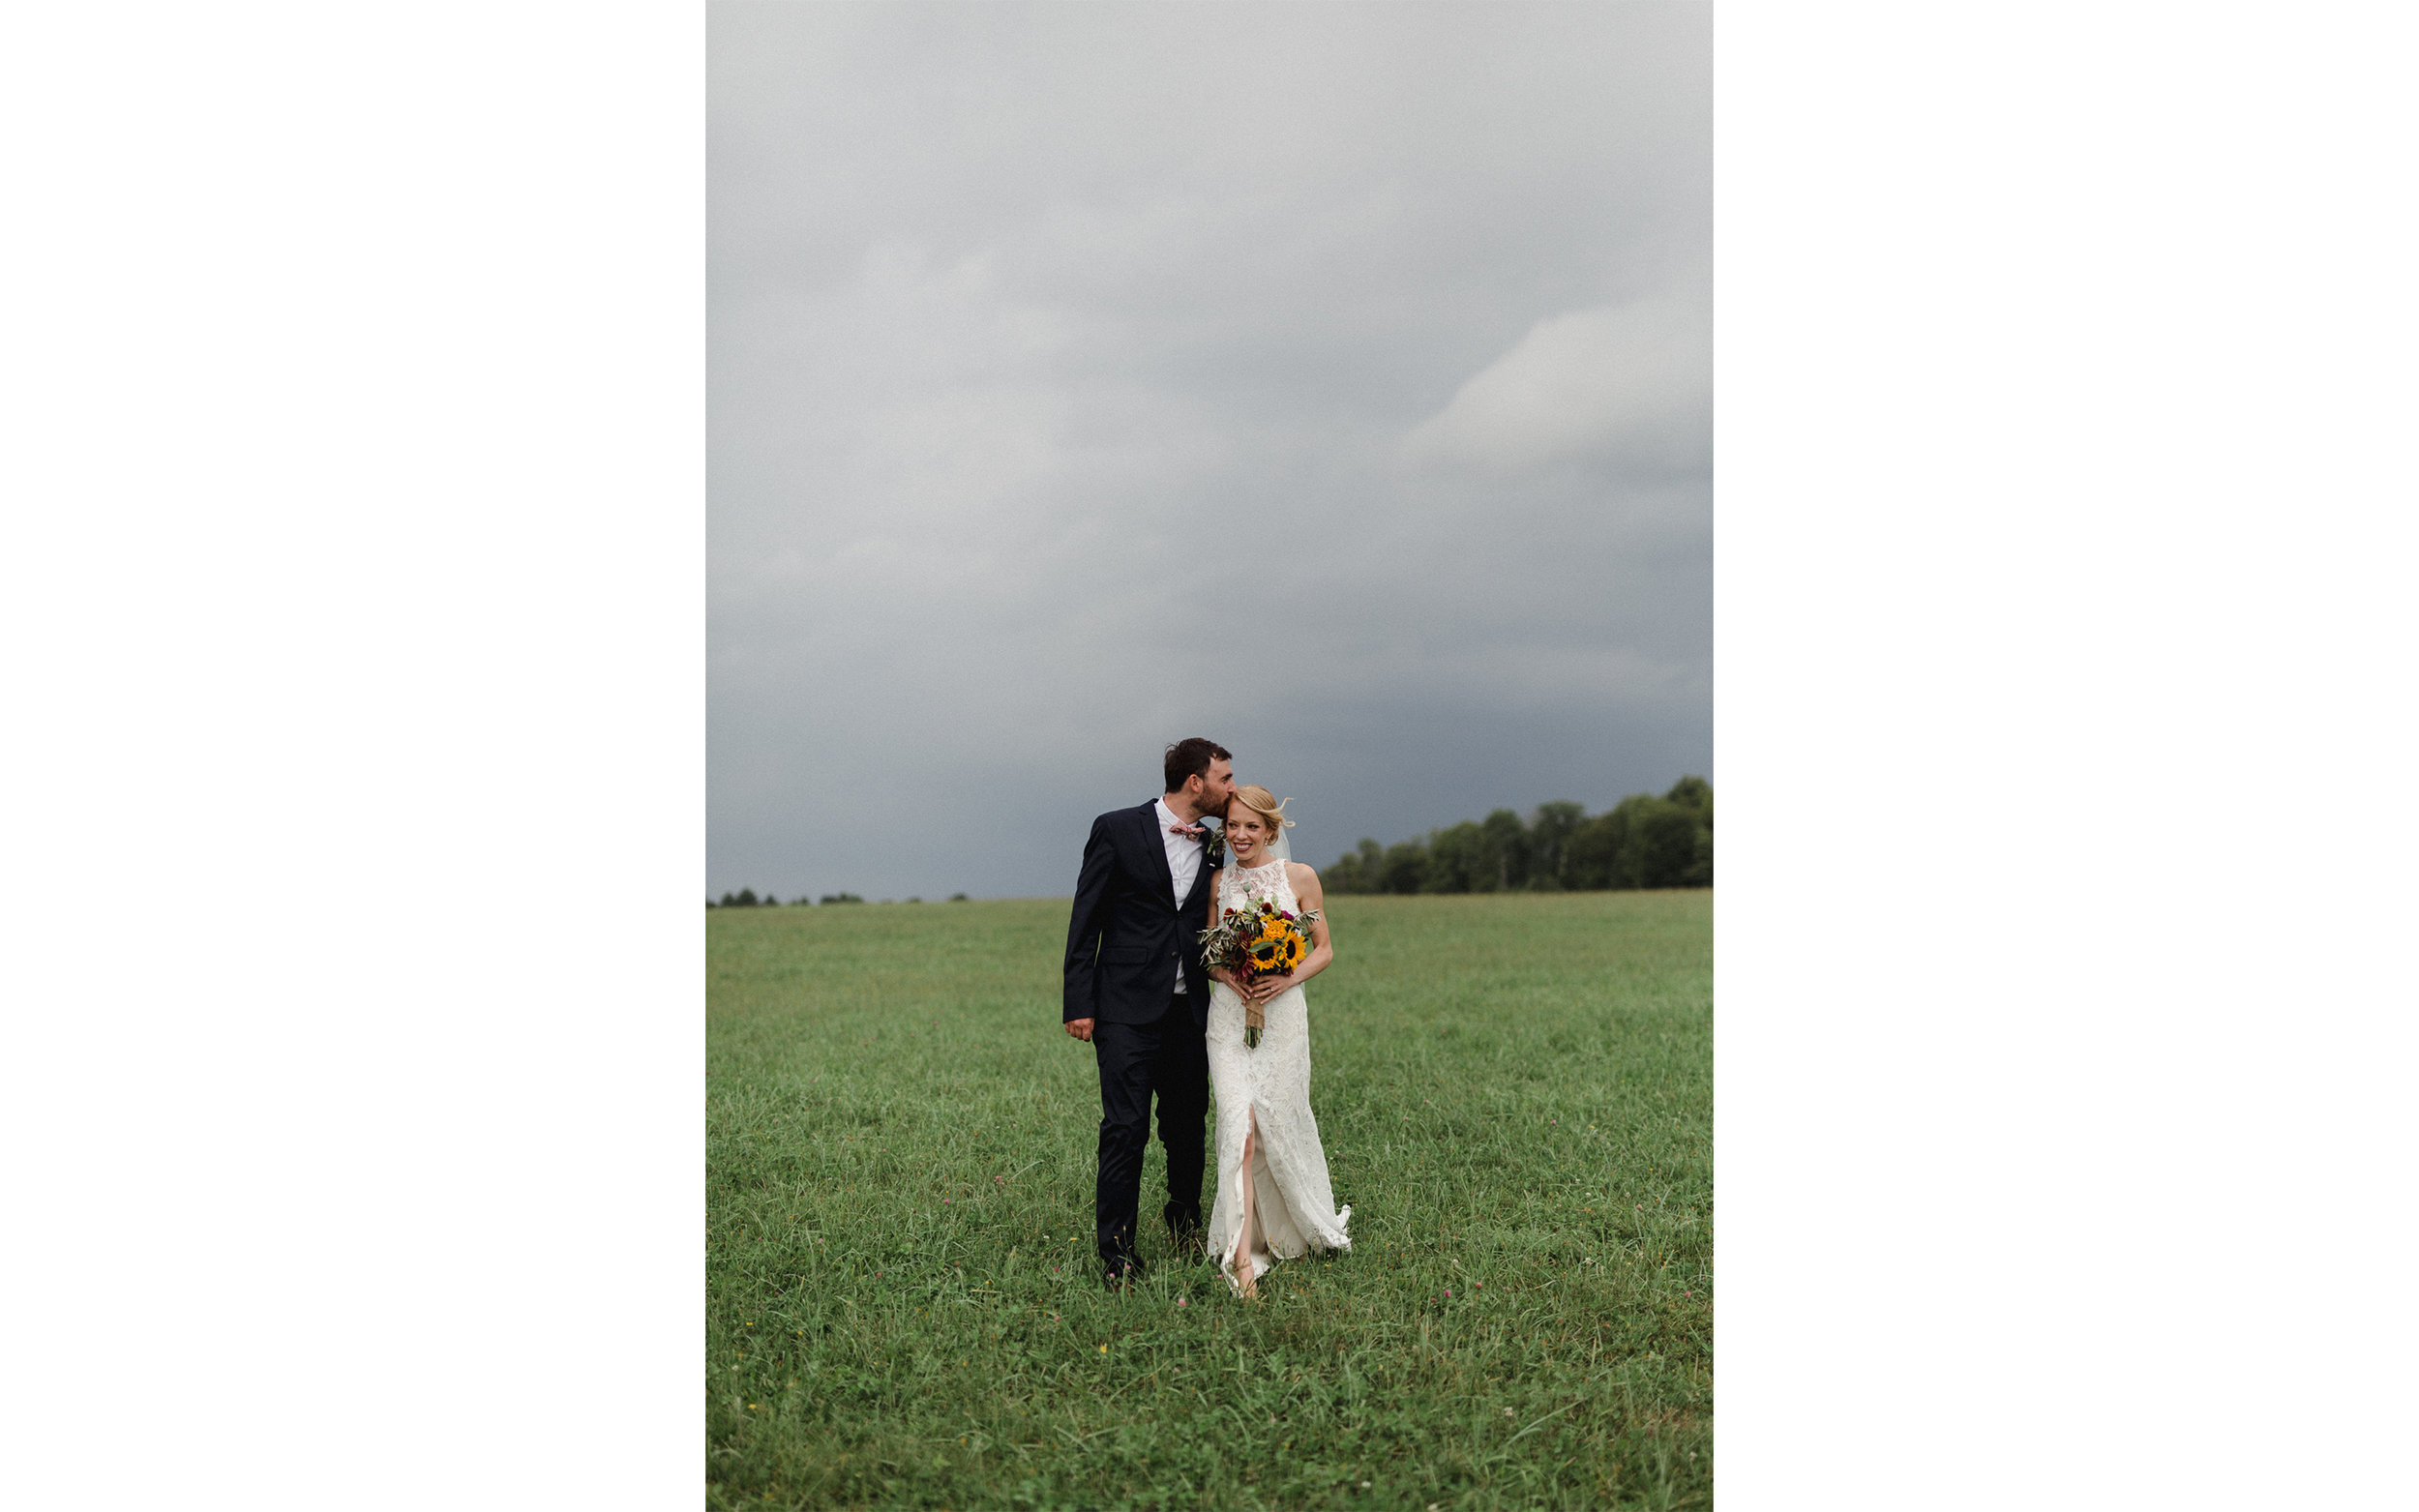 Stowe VT Farm Wedding Fine Art Wedding Photographer_Meg Haley Photographs_013.jpg